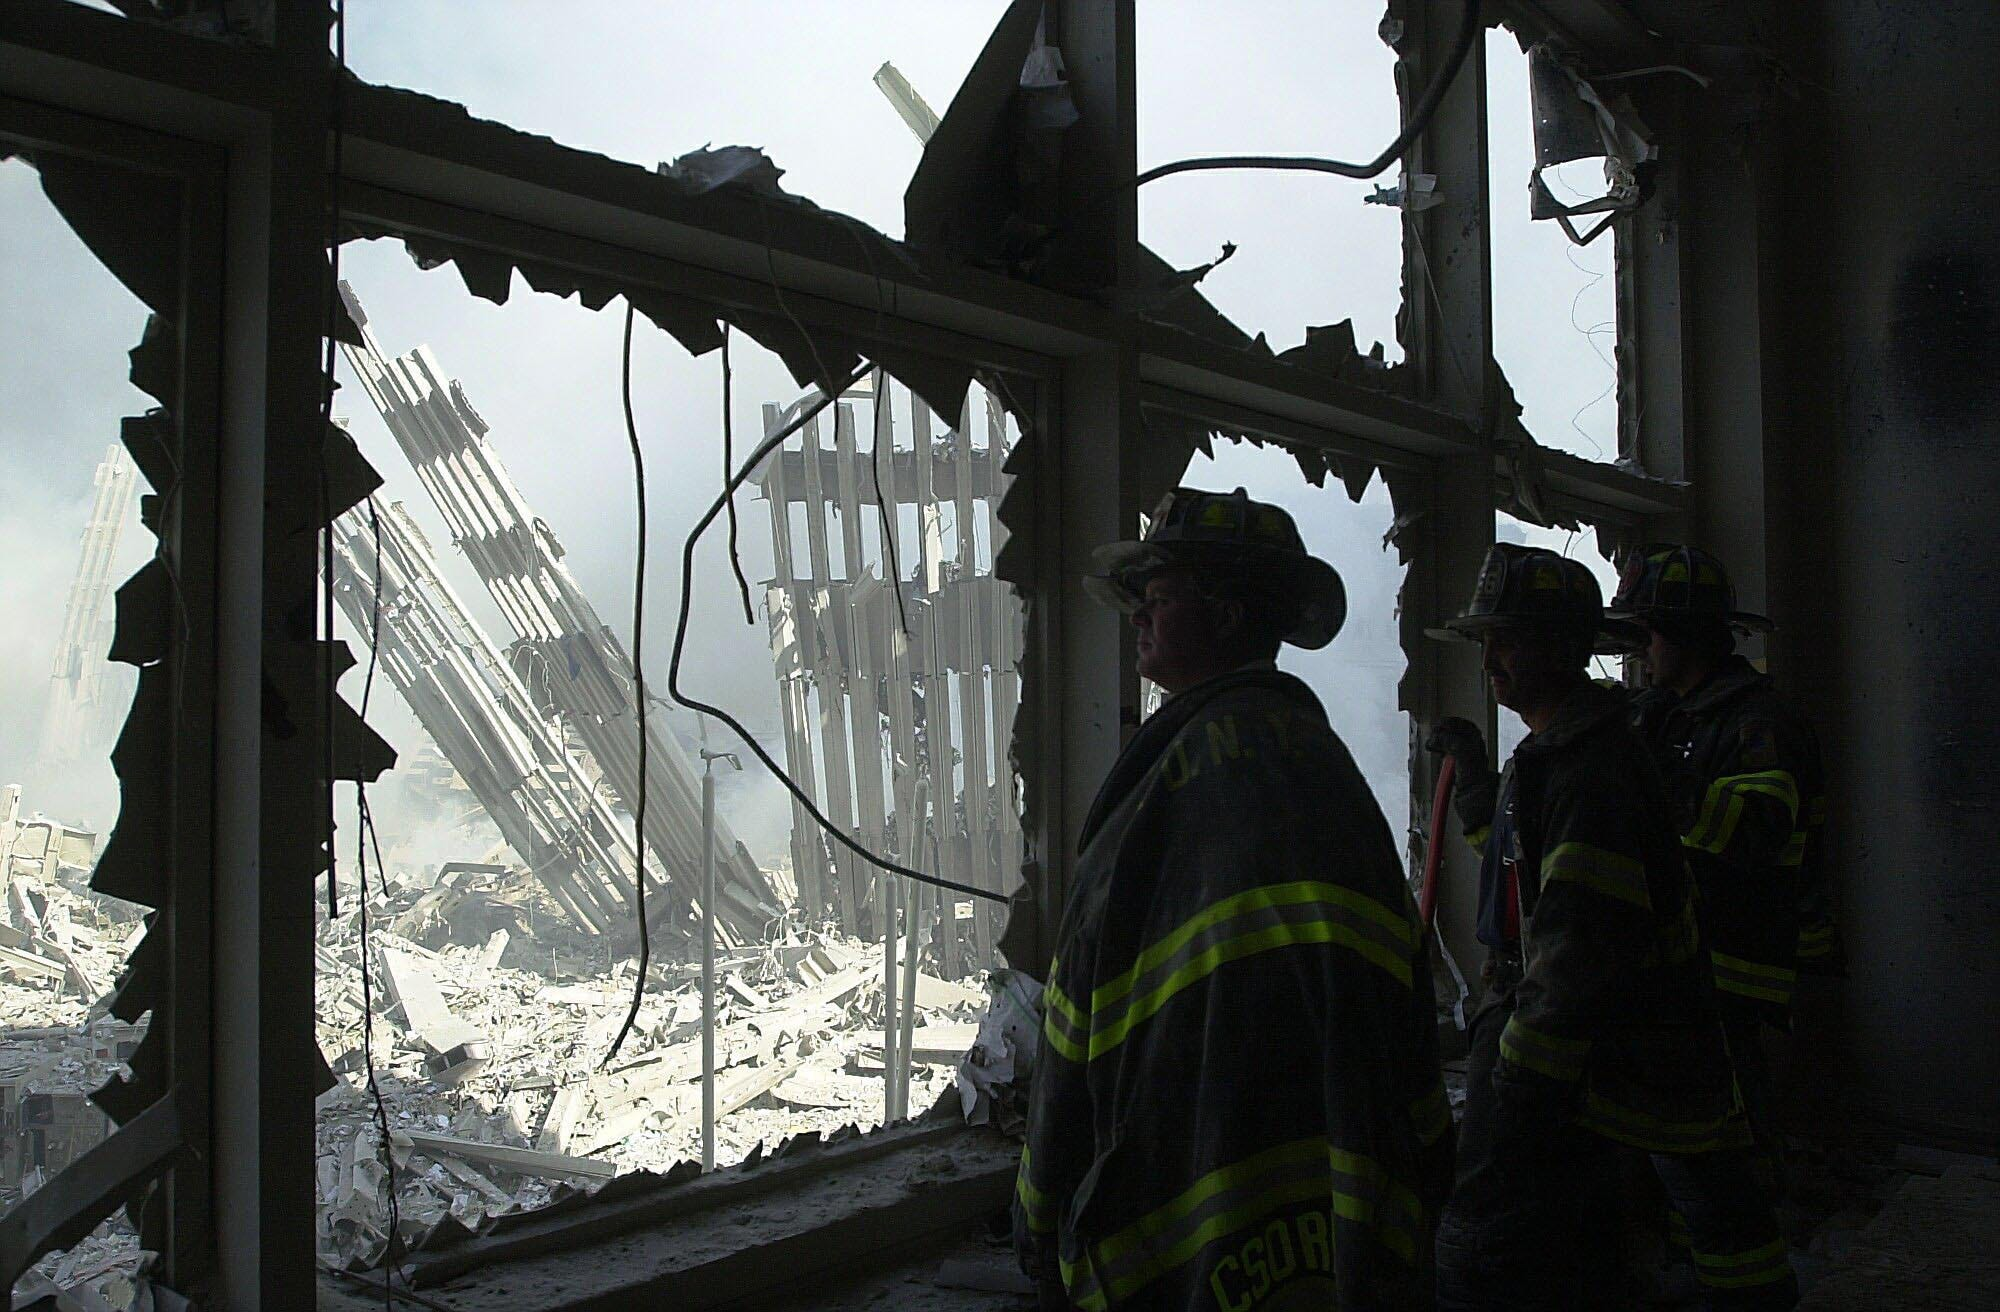 New York City Firefighters look at the remains of the World Trade Center on Sept. 11, 2001.